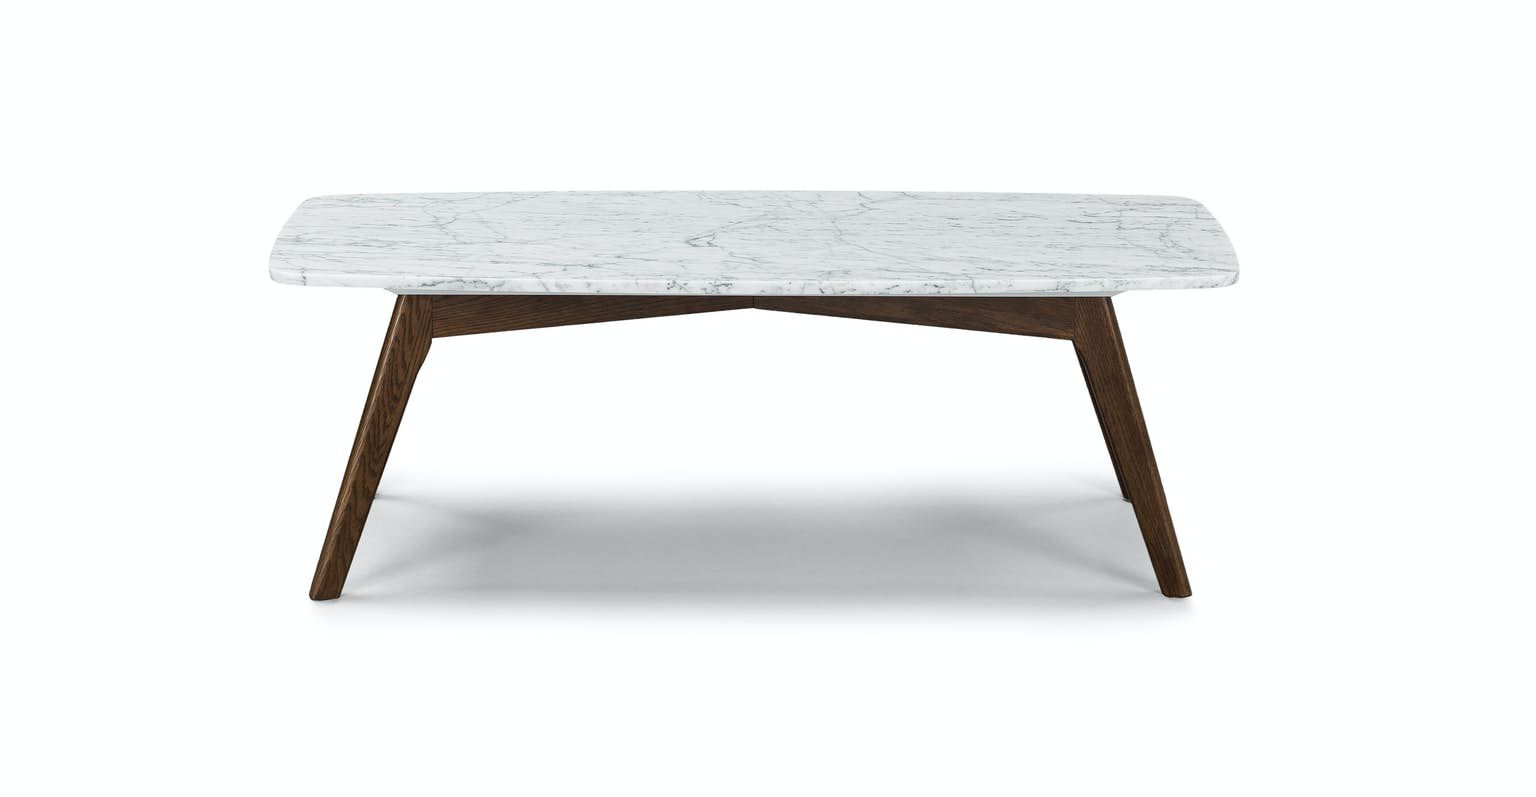 Edloe Finch Mid Century Modern Coffee Table Set By Coffee Tables For Living Room Contemp Modern Coffee Table Sets Mid Century Modern Coffee Table Coffee Table [ 2314 x 2000 Pixel ]